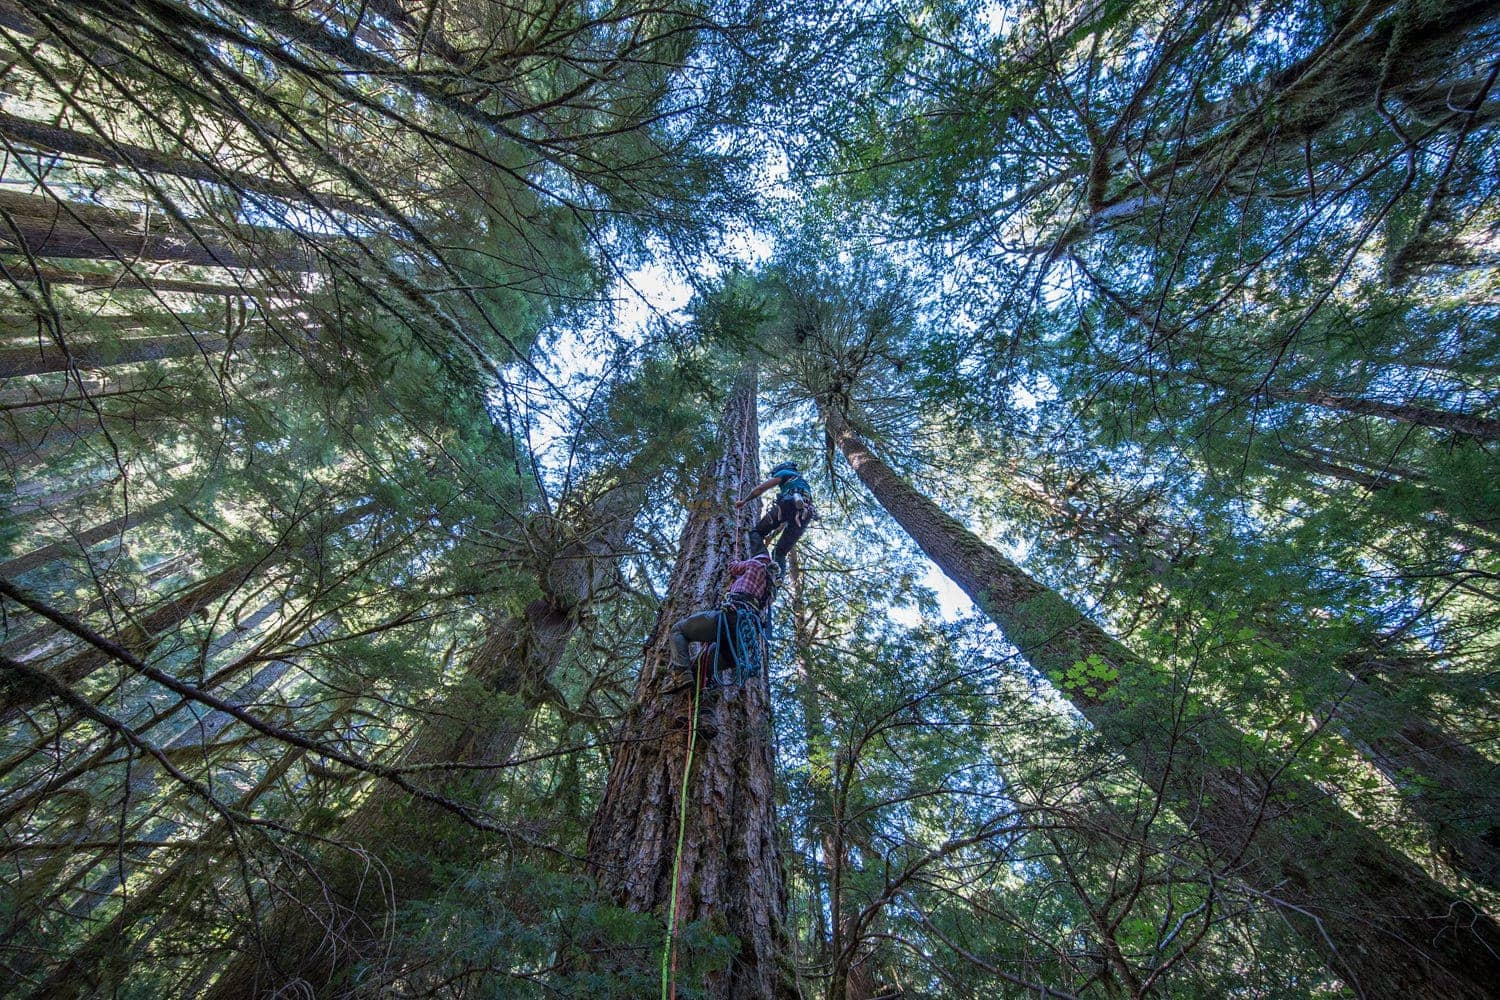 View from the ground as two climbers scale a tall tree